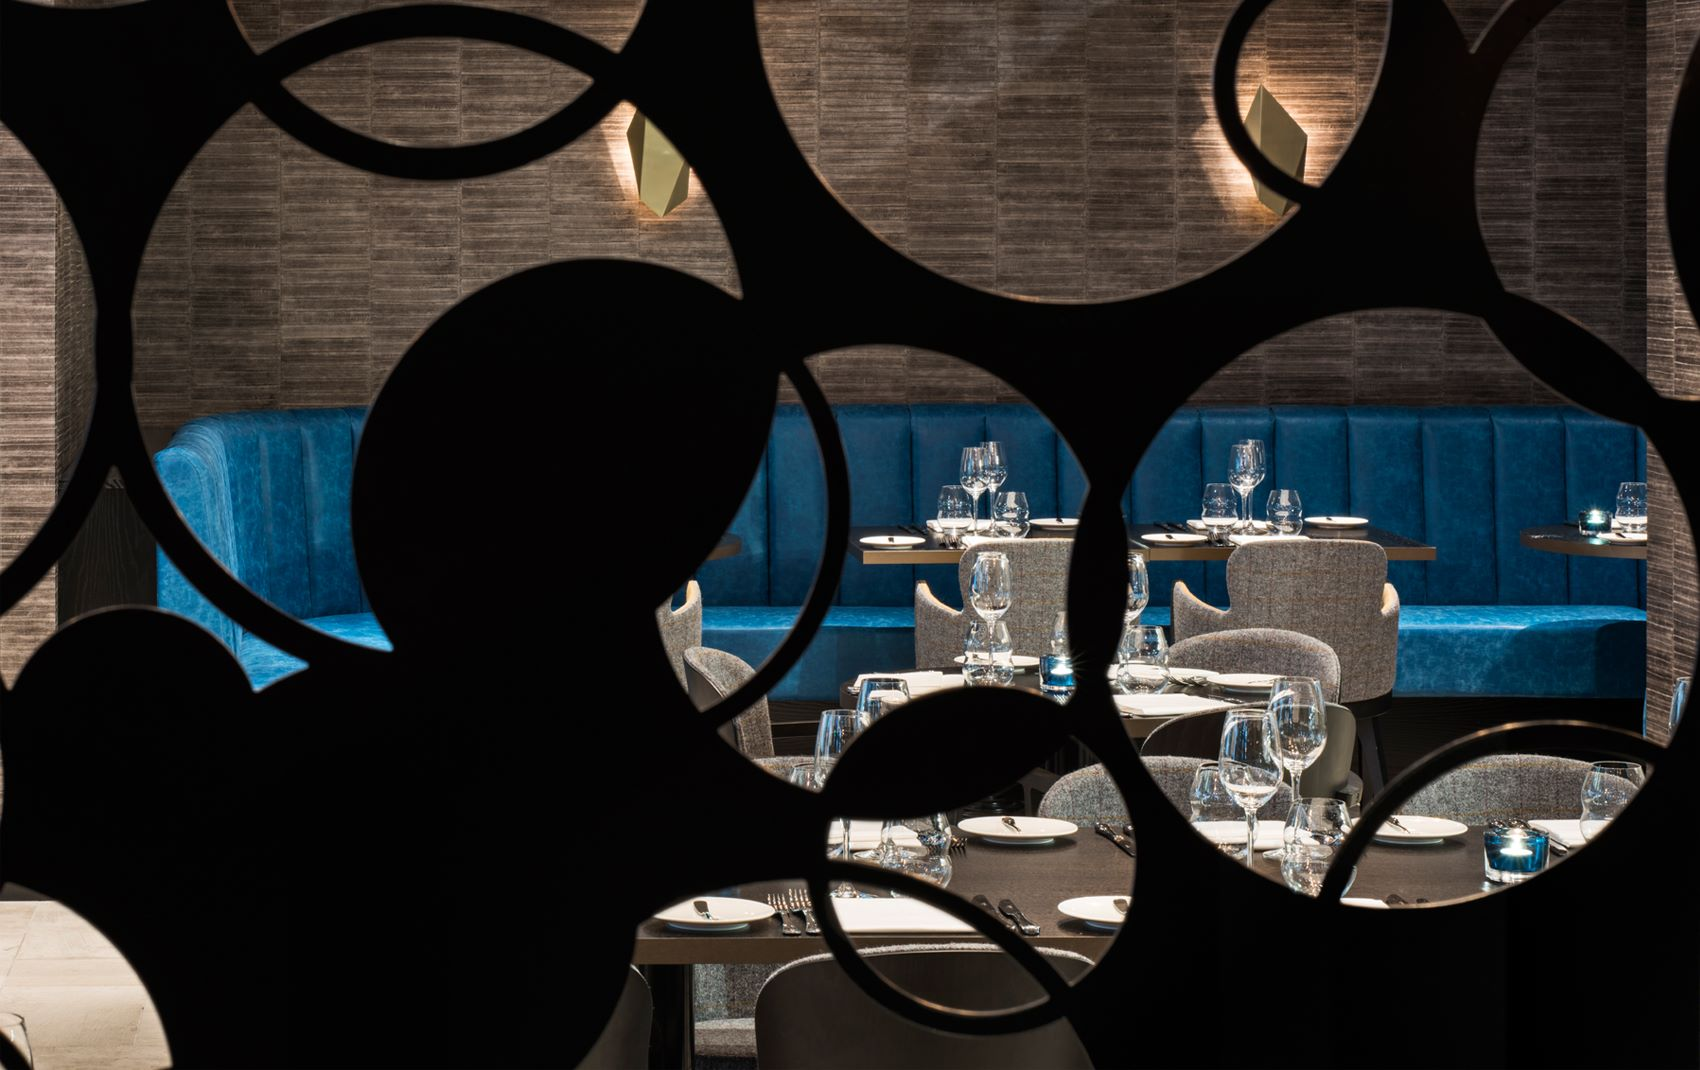 m restaurant - luxury restaurant design